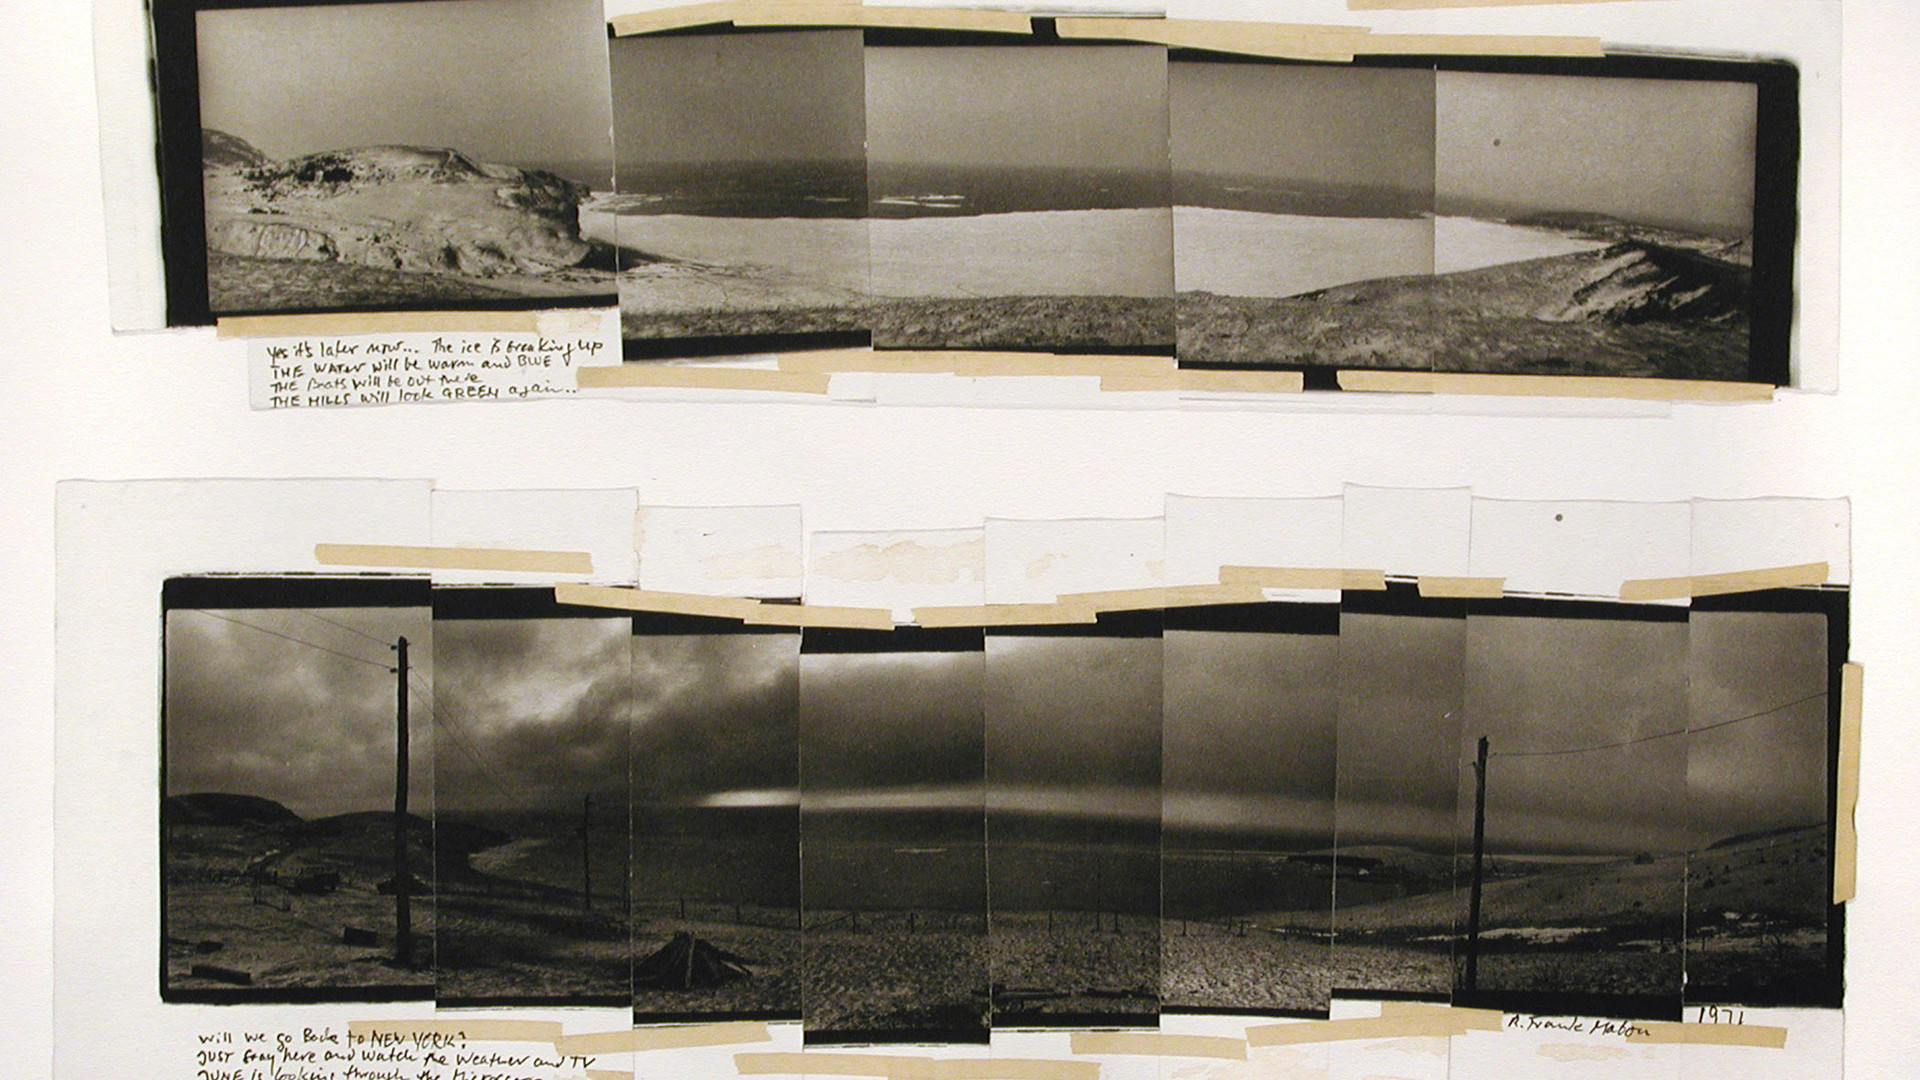 Robert Frank, A Monument to Electricity and Photography, Mabou, c. 1970s